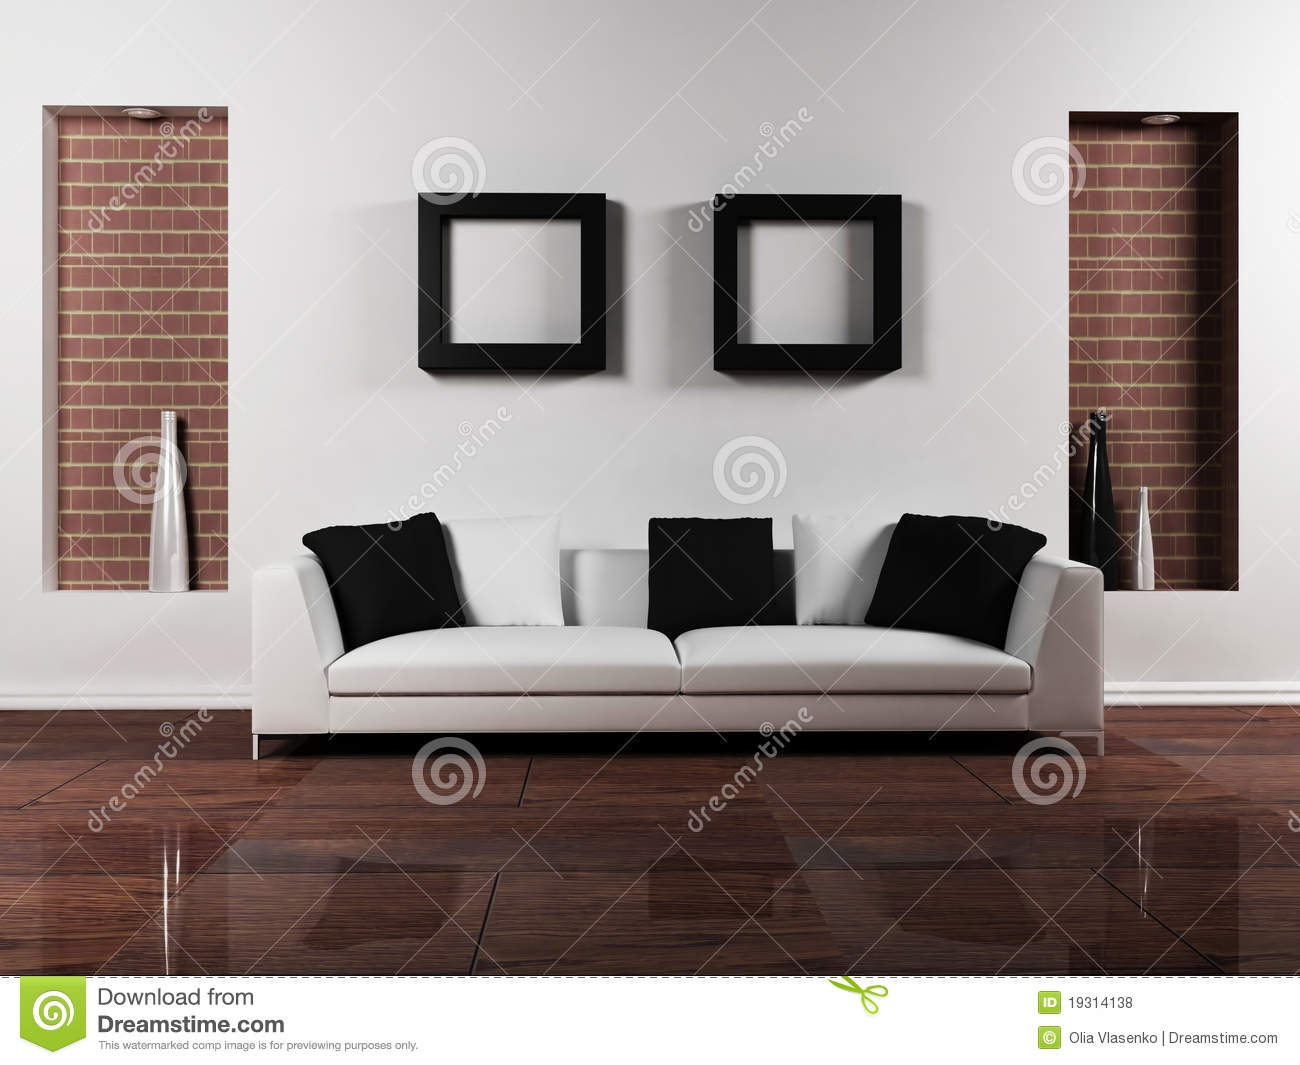 Modern interior design of living room royalty free stock for Modern drawing room interior